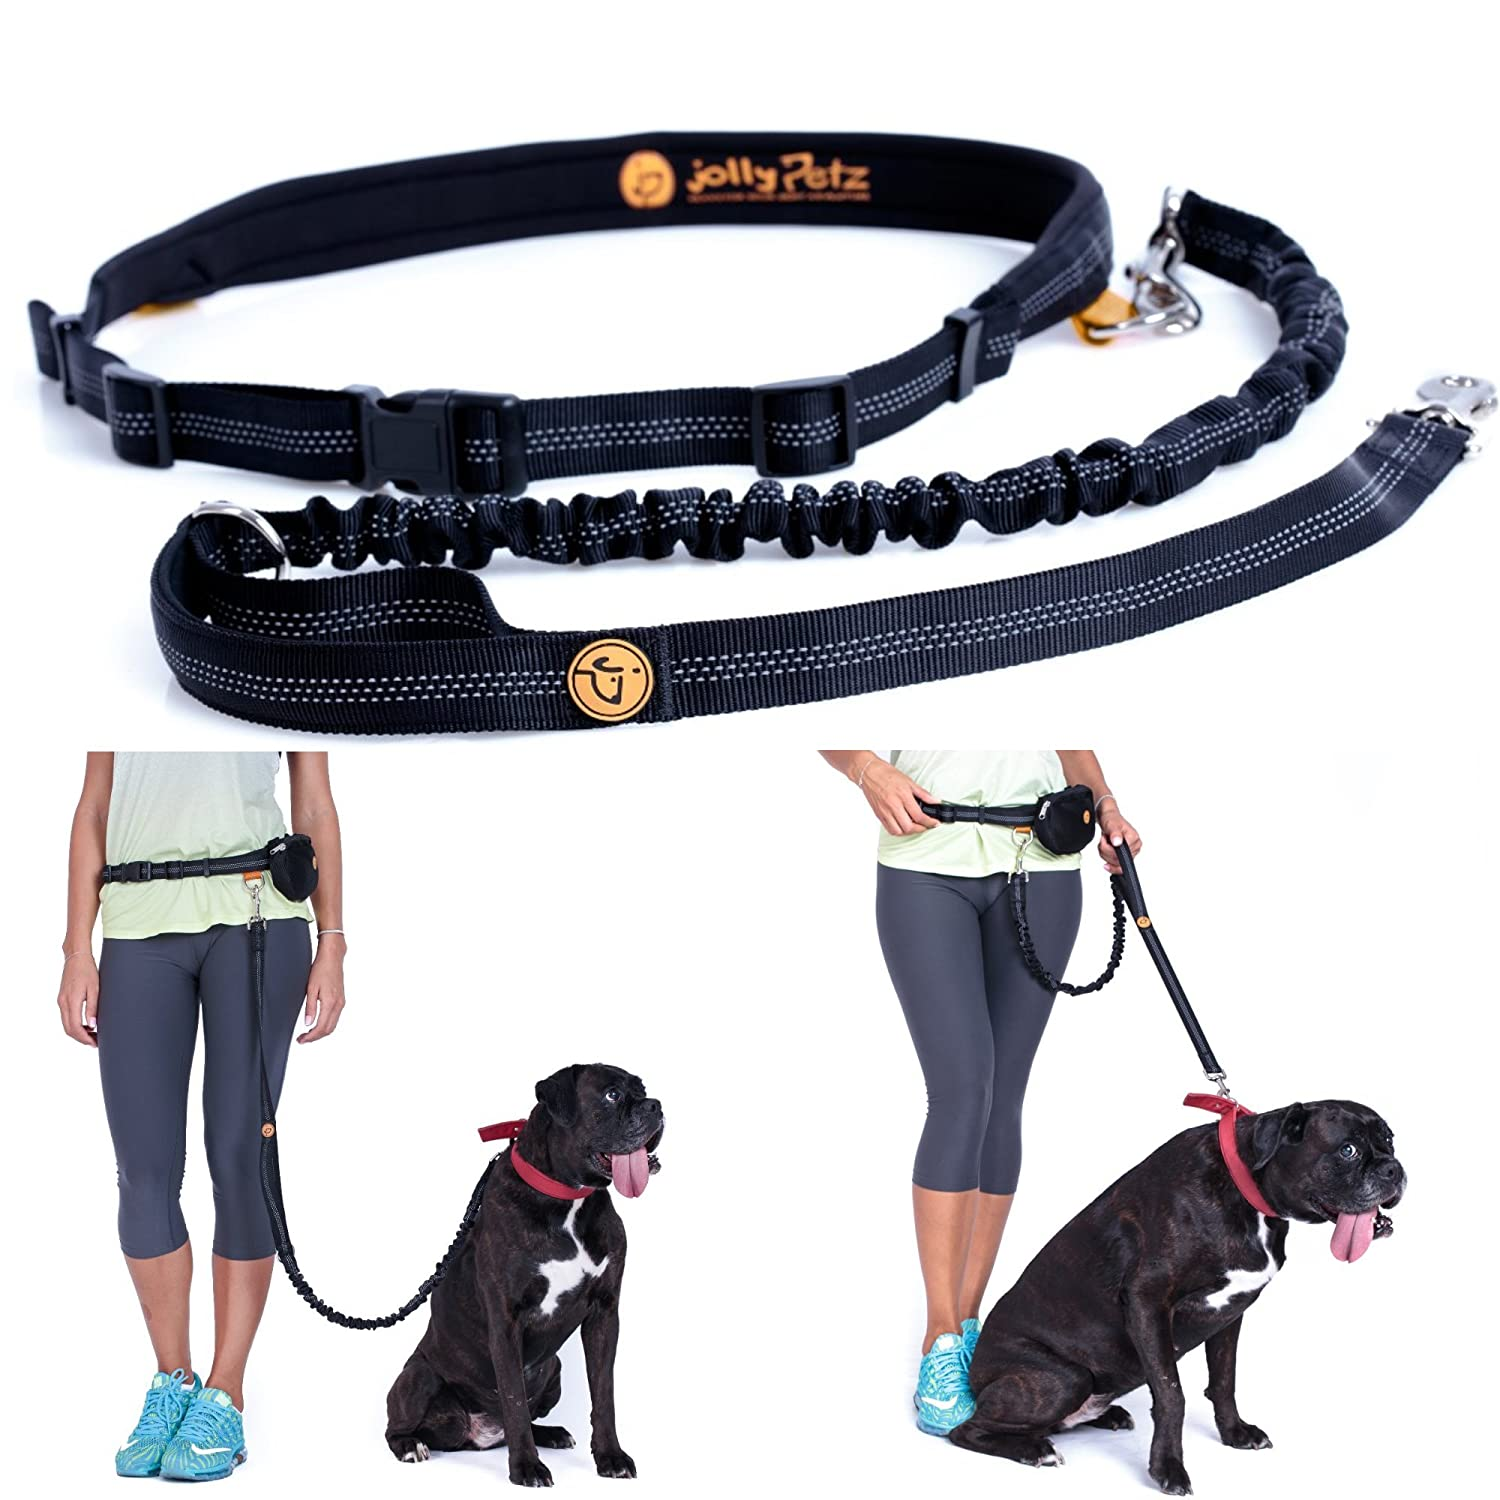 Jollypetz Best Bungee Dog Leash with Adjustable Waist Belt, Perfect Dog Hiking Gear and for Walking and Running Hands Free, BONUS Light Pouch Accessory and FREE EBOOK with Exercising and Training Tips